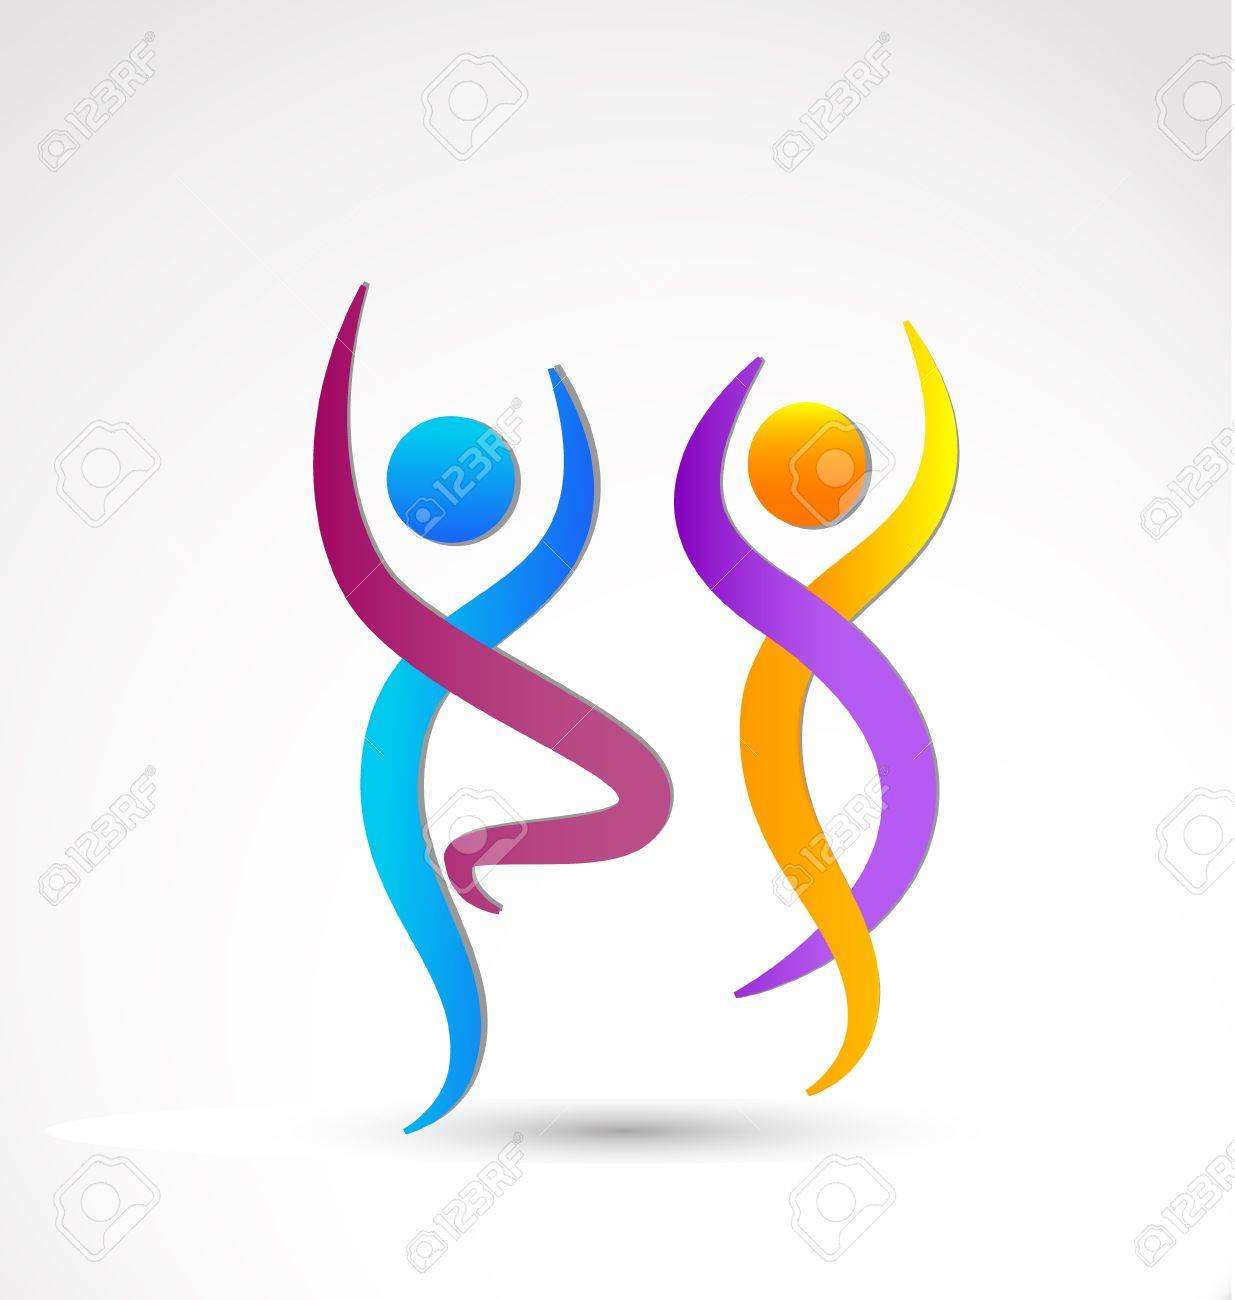 Wellness icon  Couple Dancing Wellness Icon Background Royalty Free Cliparts ...